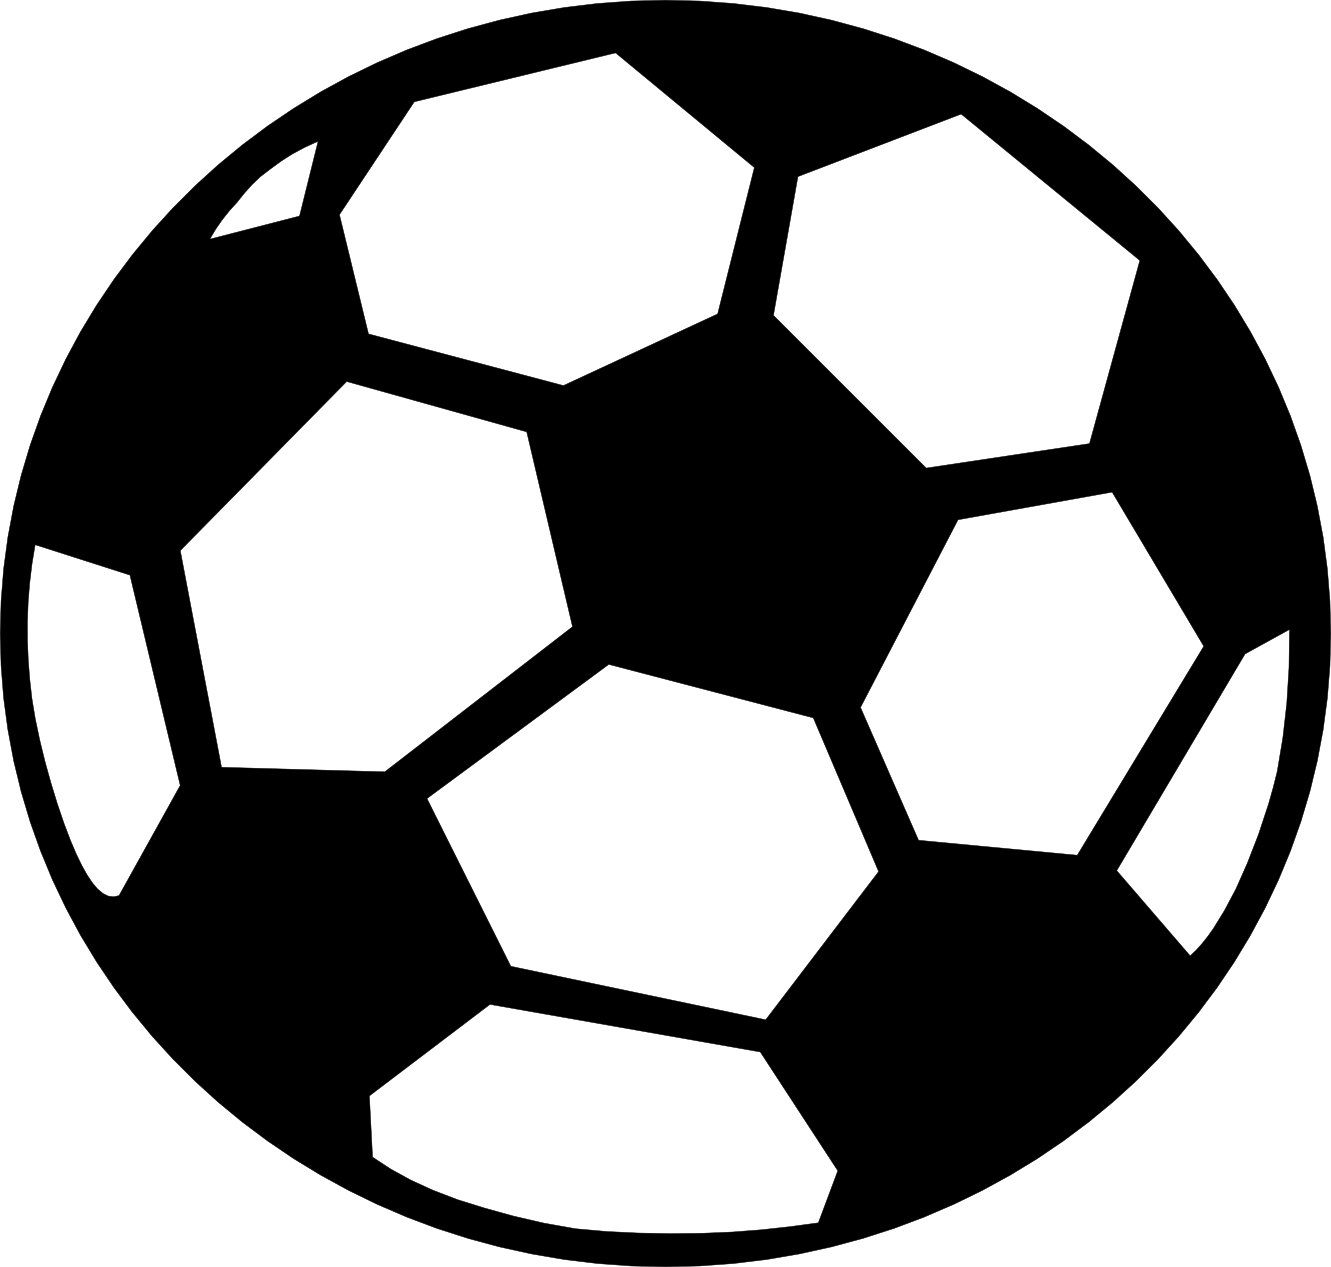 Soccer ball clipart free picture royalty free Soccer Ball Clipart | Clipart Panda - Free Clipart Images picture royalty free